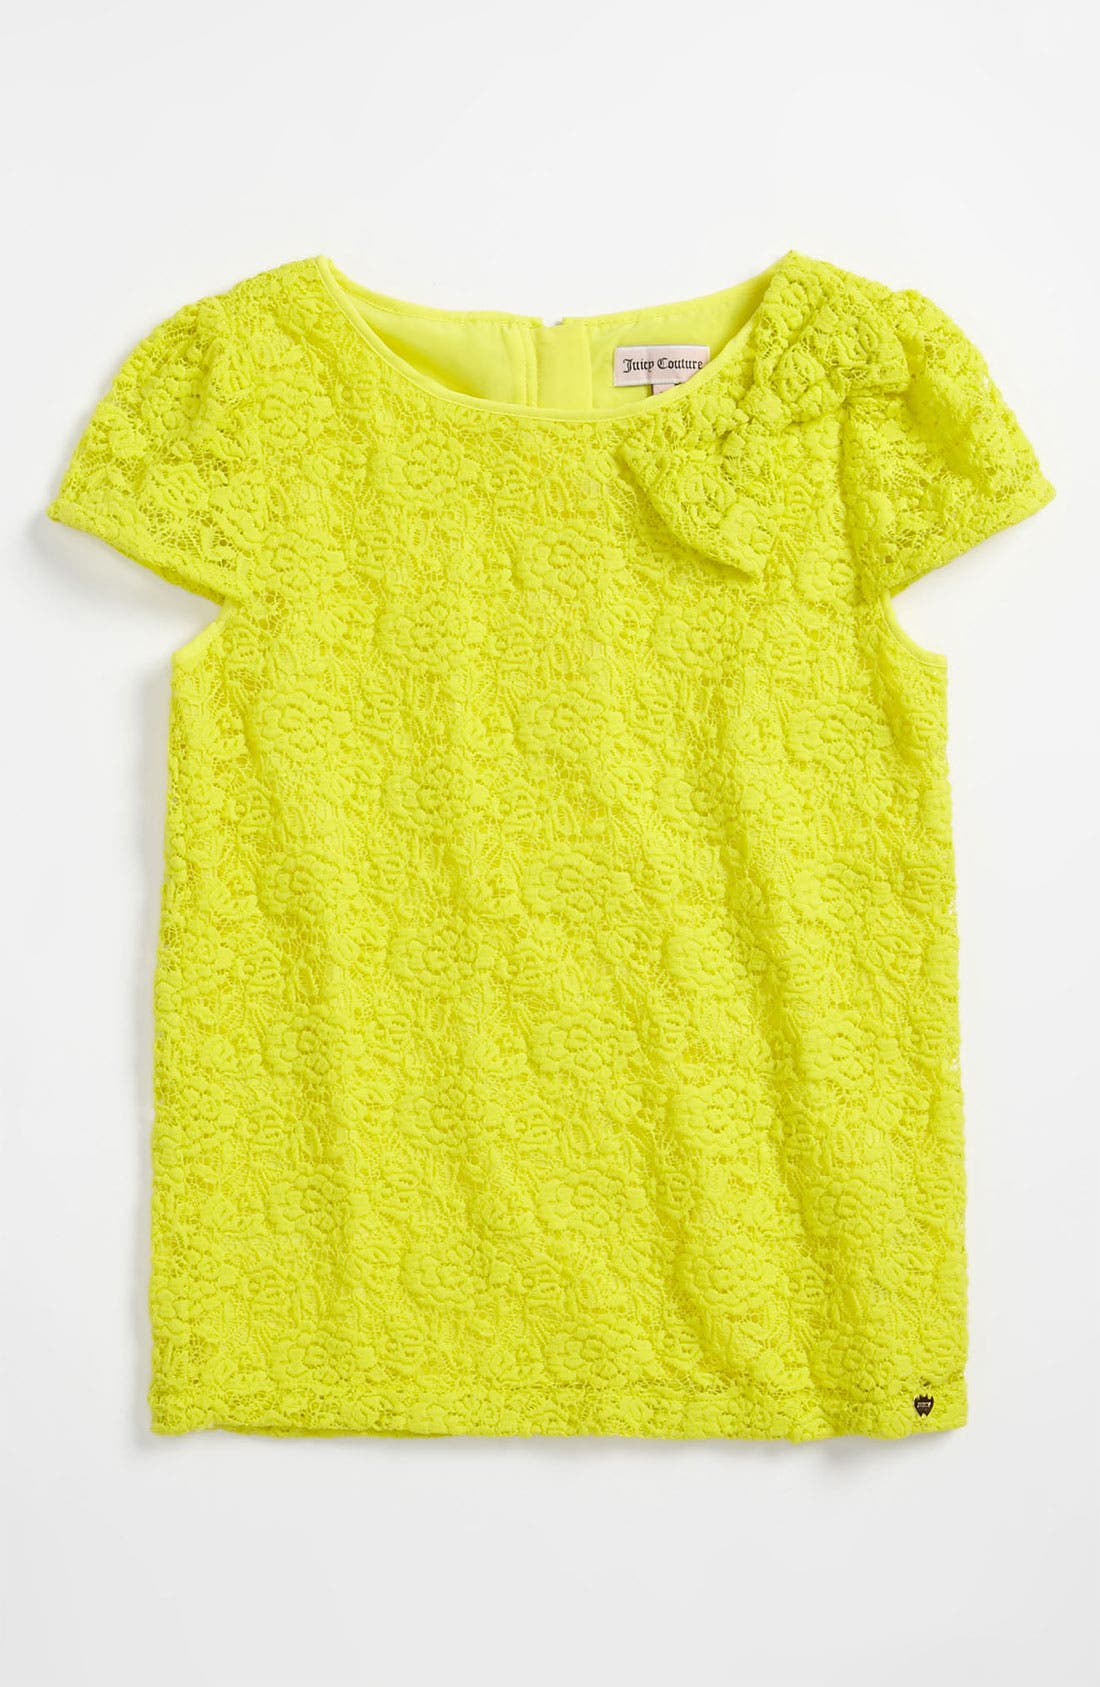 Main Image - Juicy Couture Lace Top (Little Girls & Big Girls)